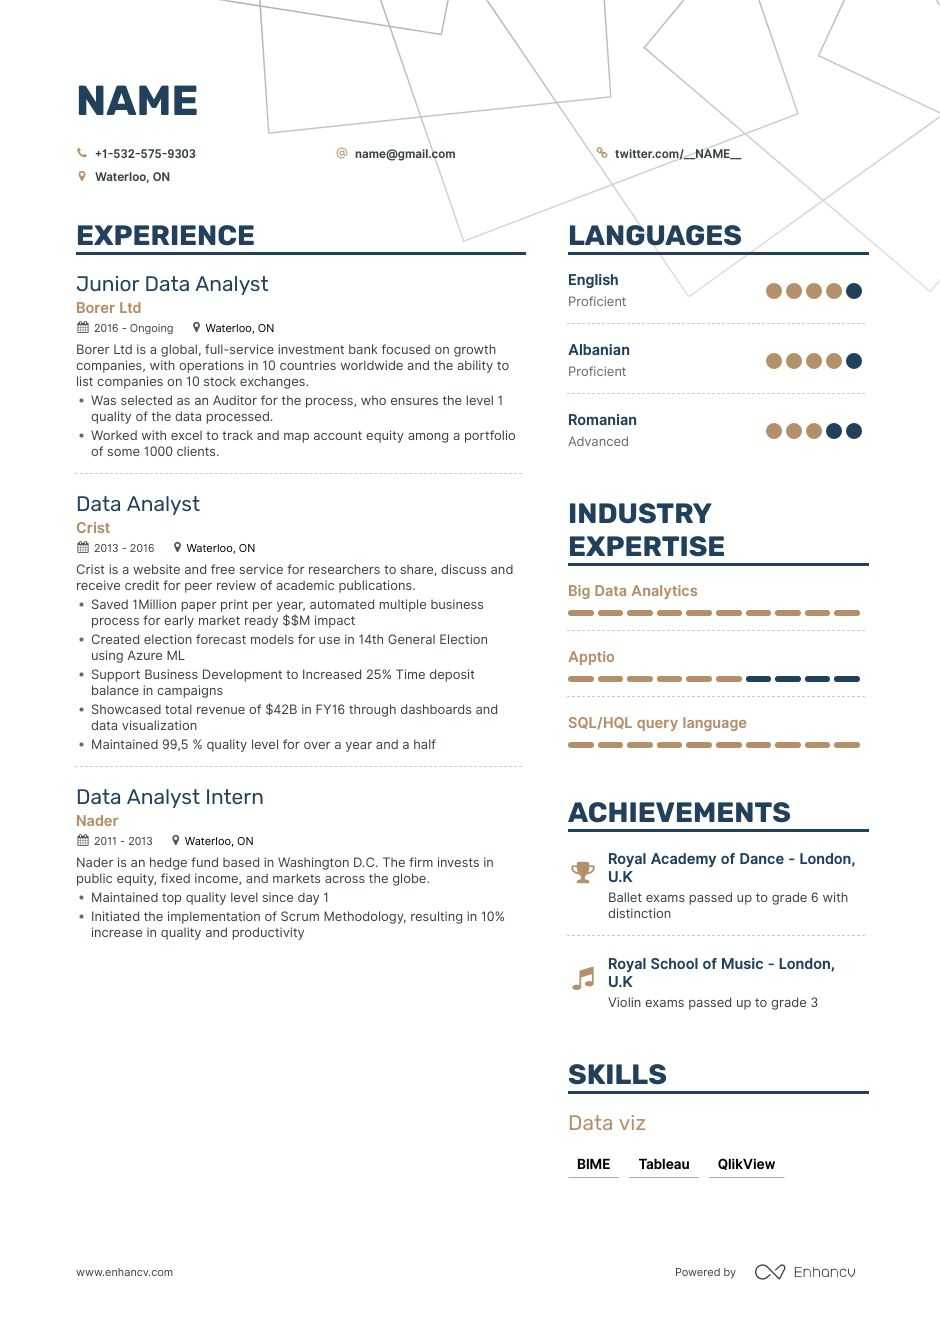 security analyst resume examples skills templates more for junior cyber cna procurement Resume Junior Cyber Security Analyst Resume